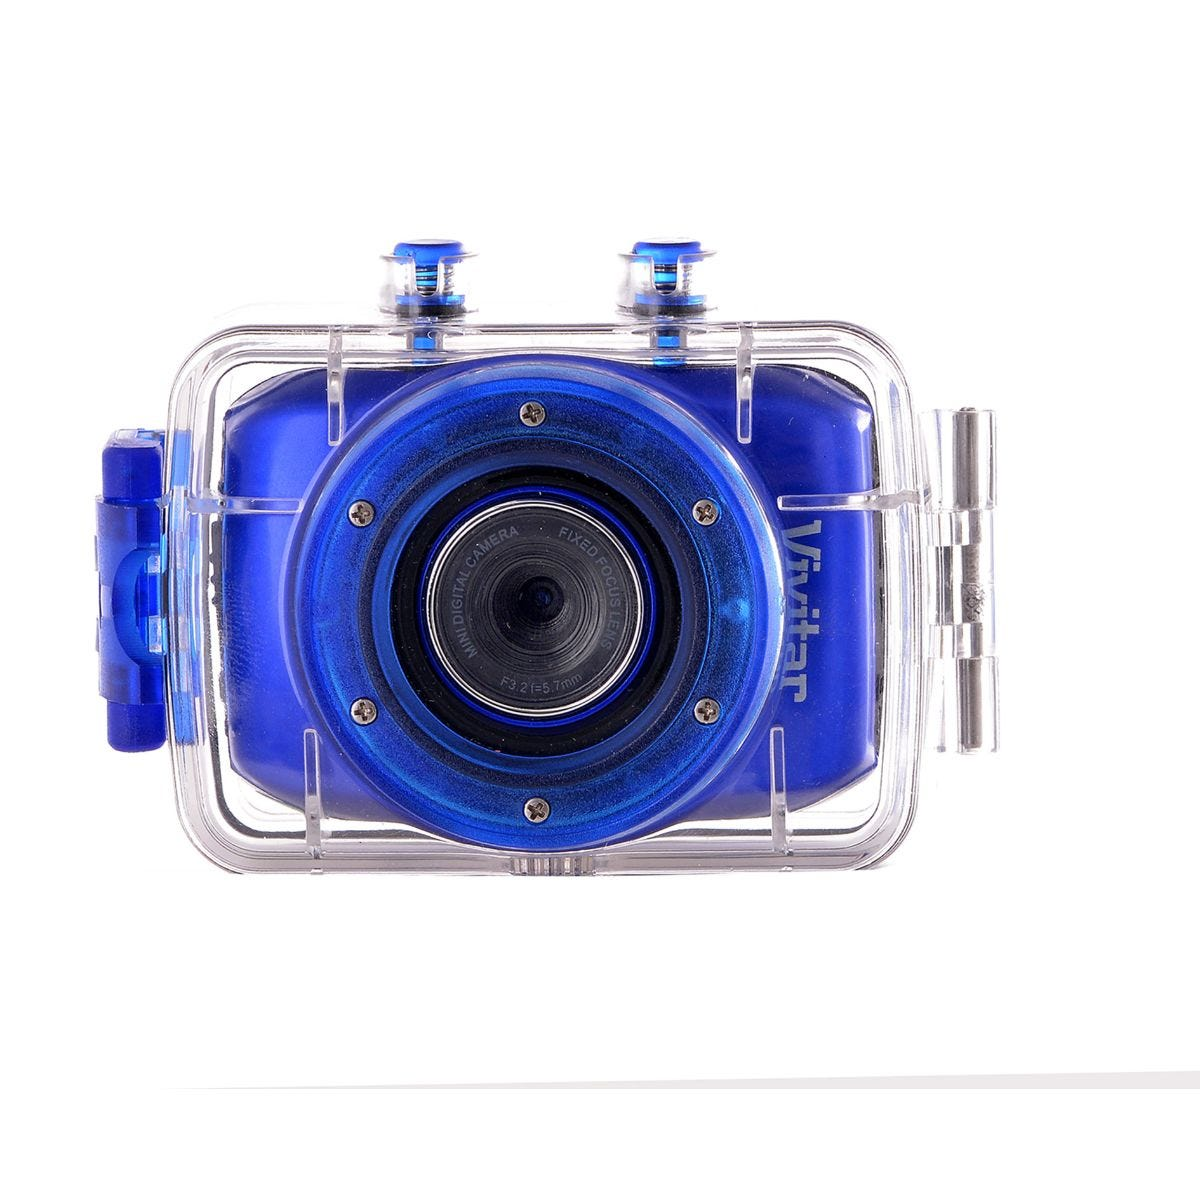 Image of Vivitar DVR 781HD Action Camera With Mounts And Selfie Stick